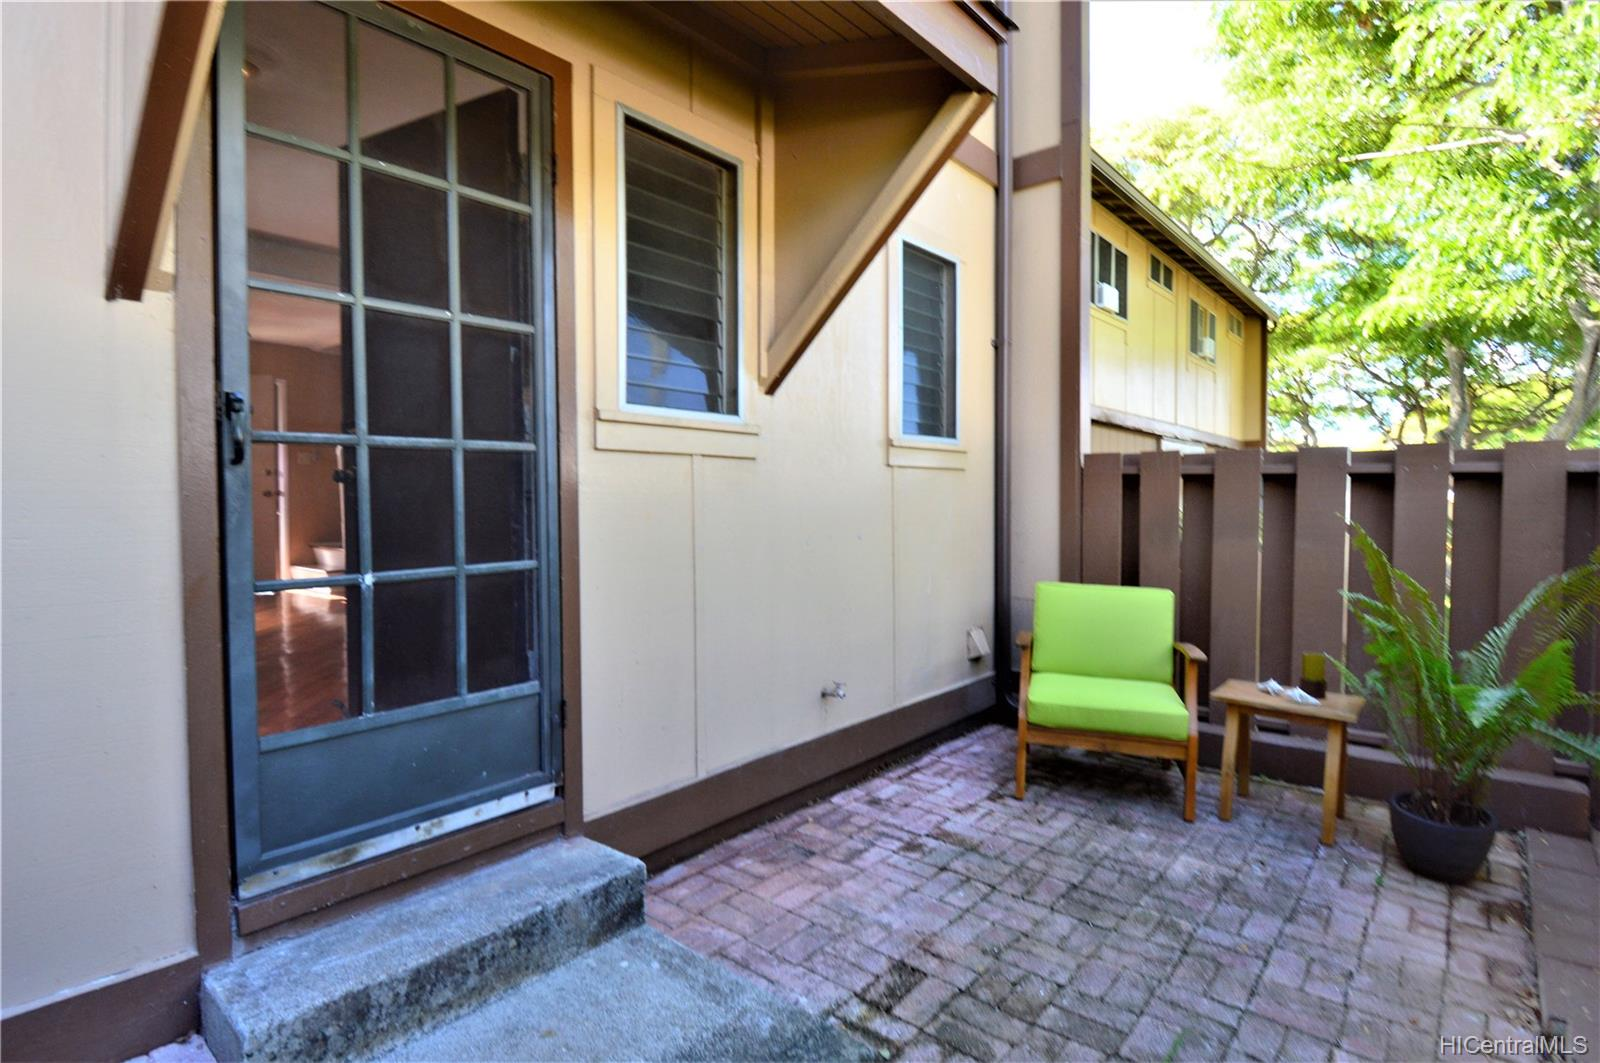 98-1397 Hinu Place townhouse # D, Pearl City, Hawaii - photo 20 of 25